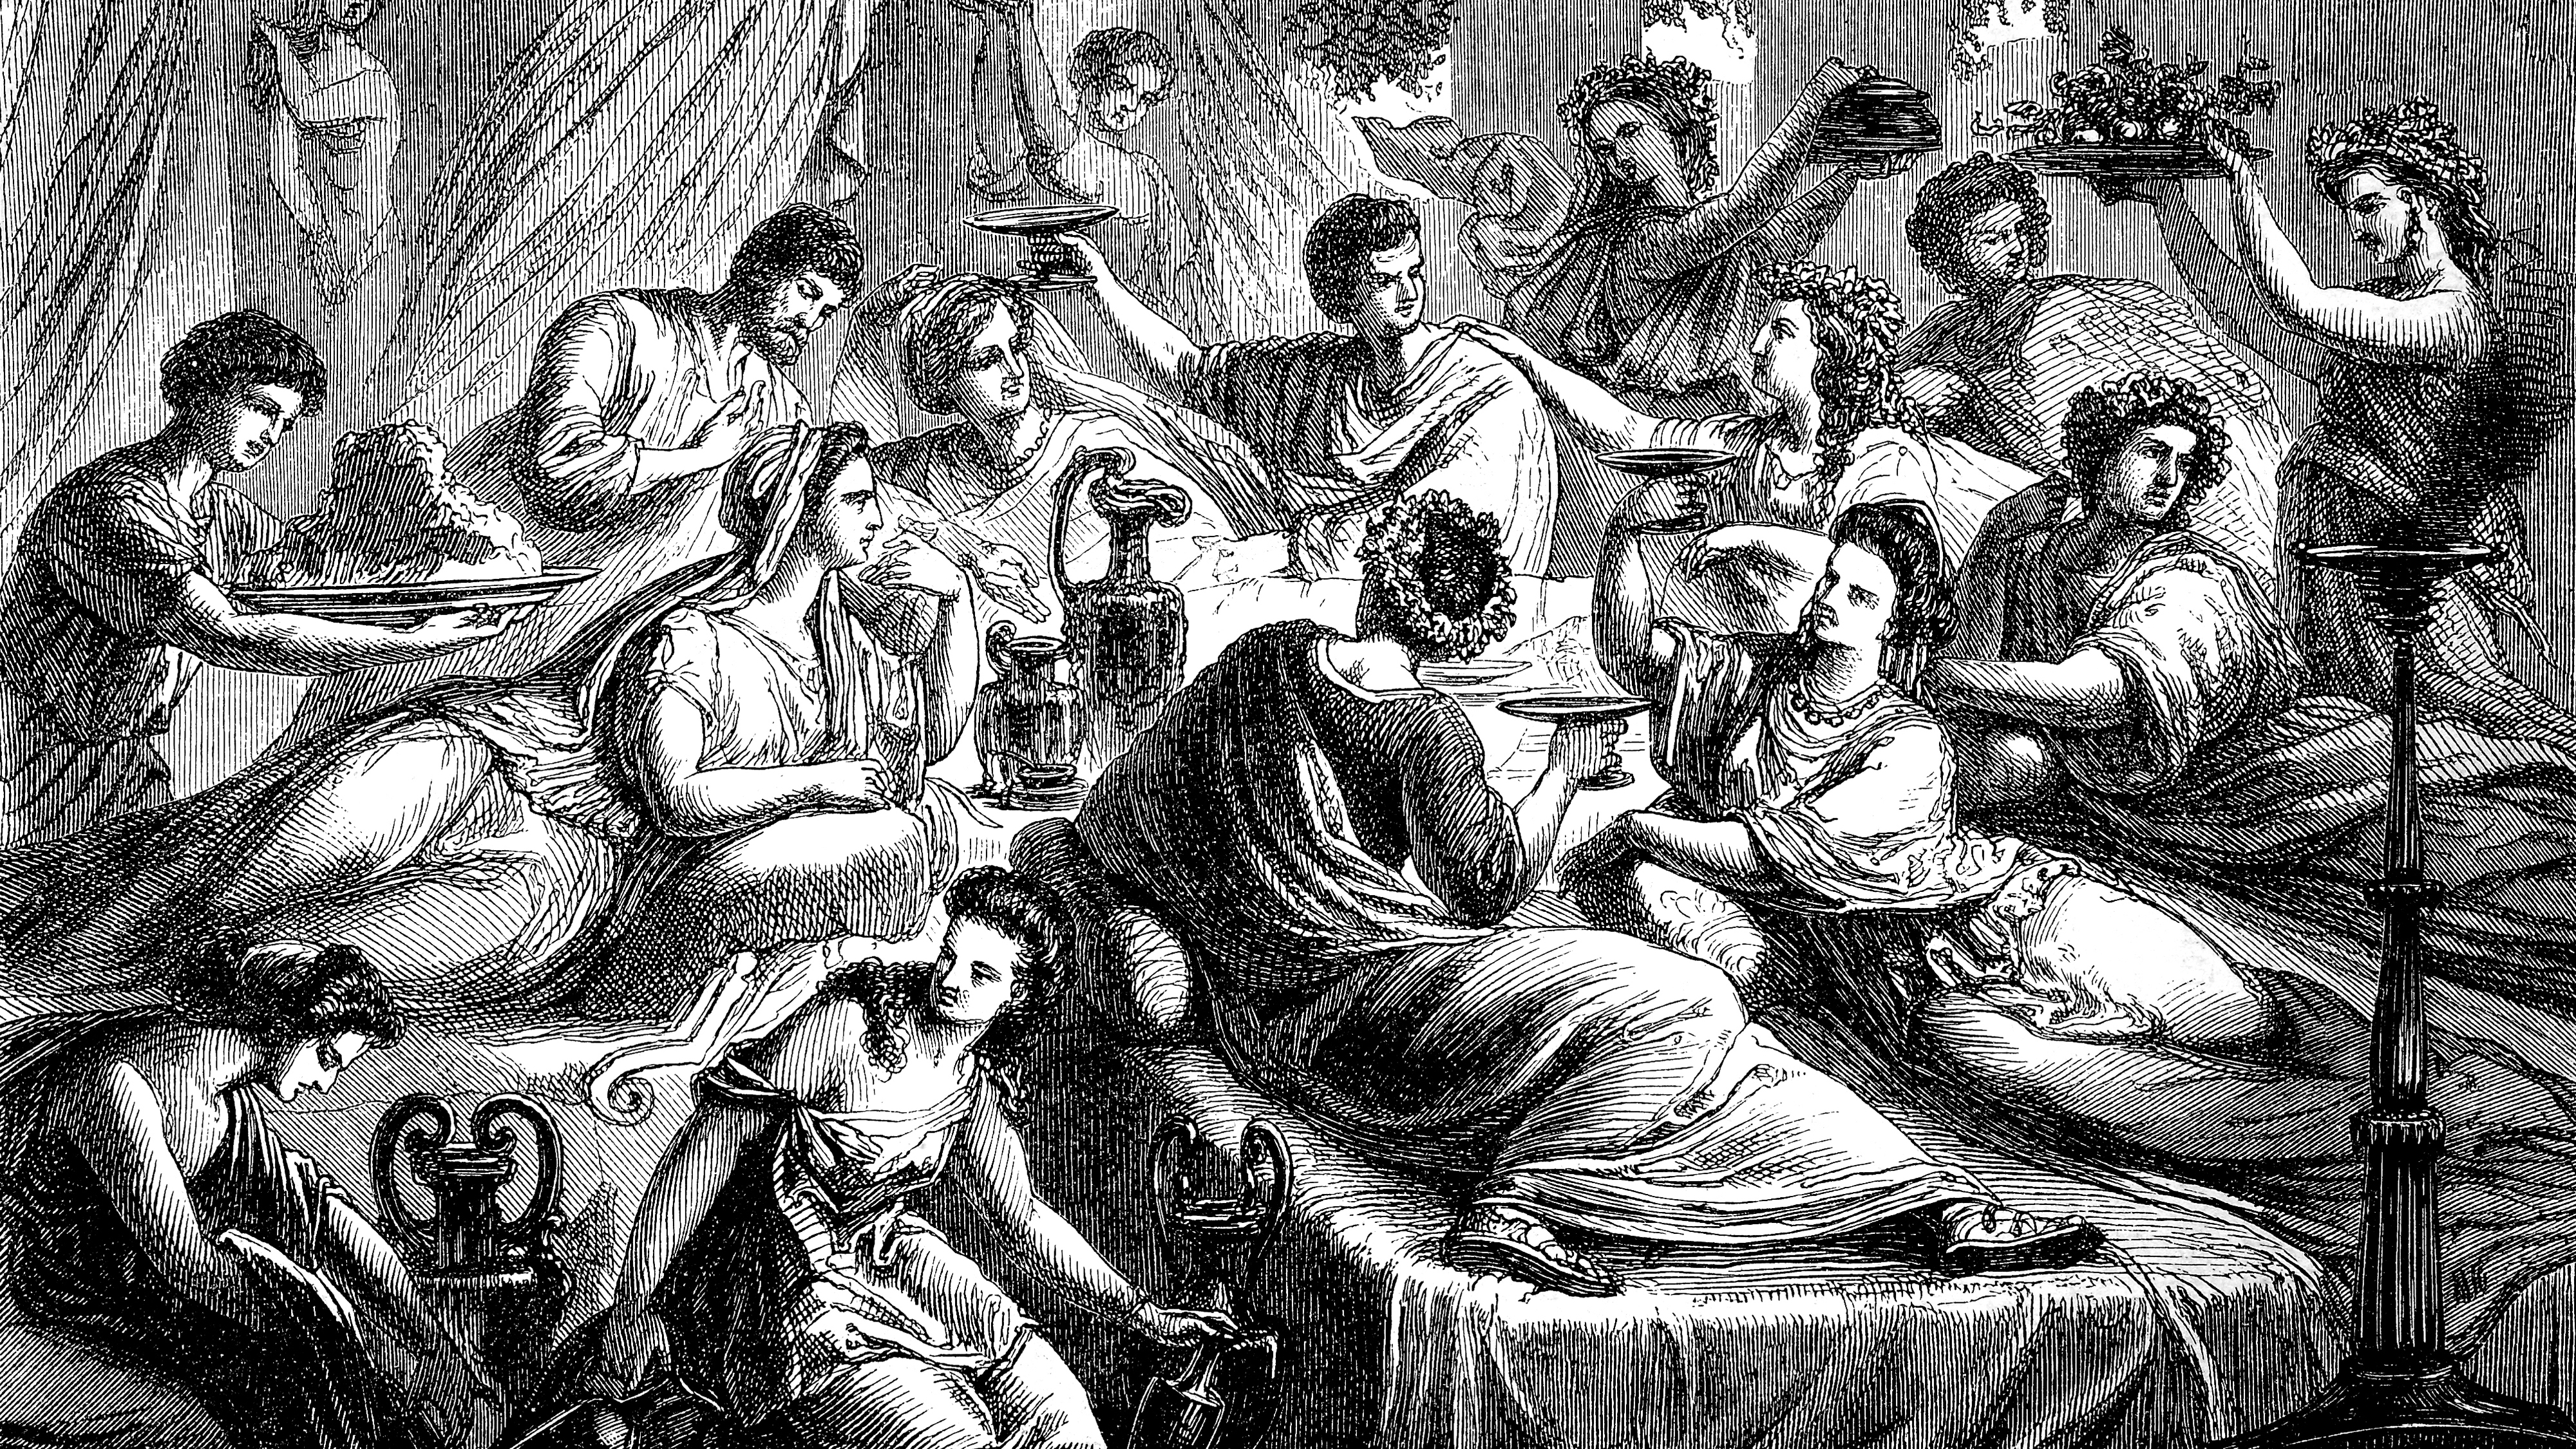 The Lavish Roman Banquet A Calculated Display Of Debauchery And Power The Salt Npr